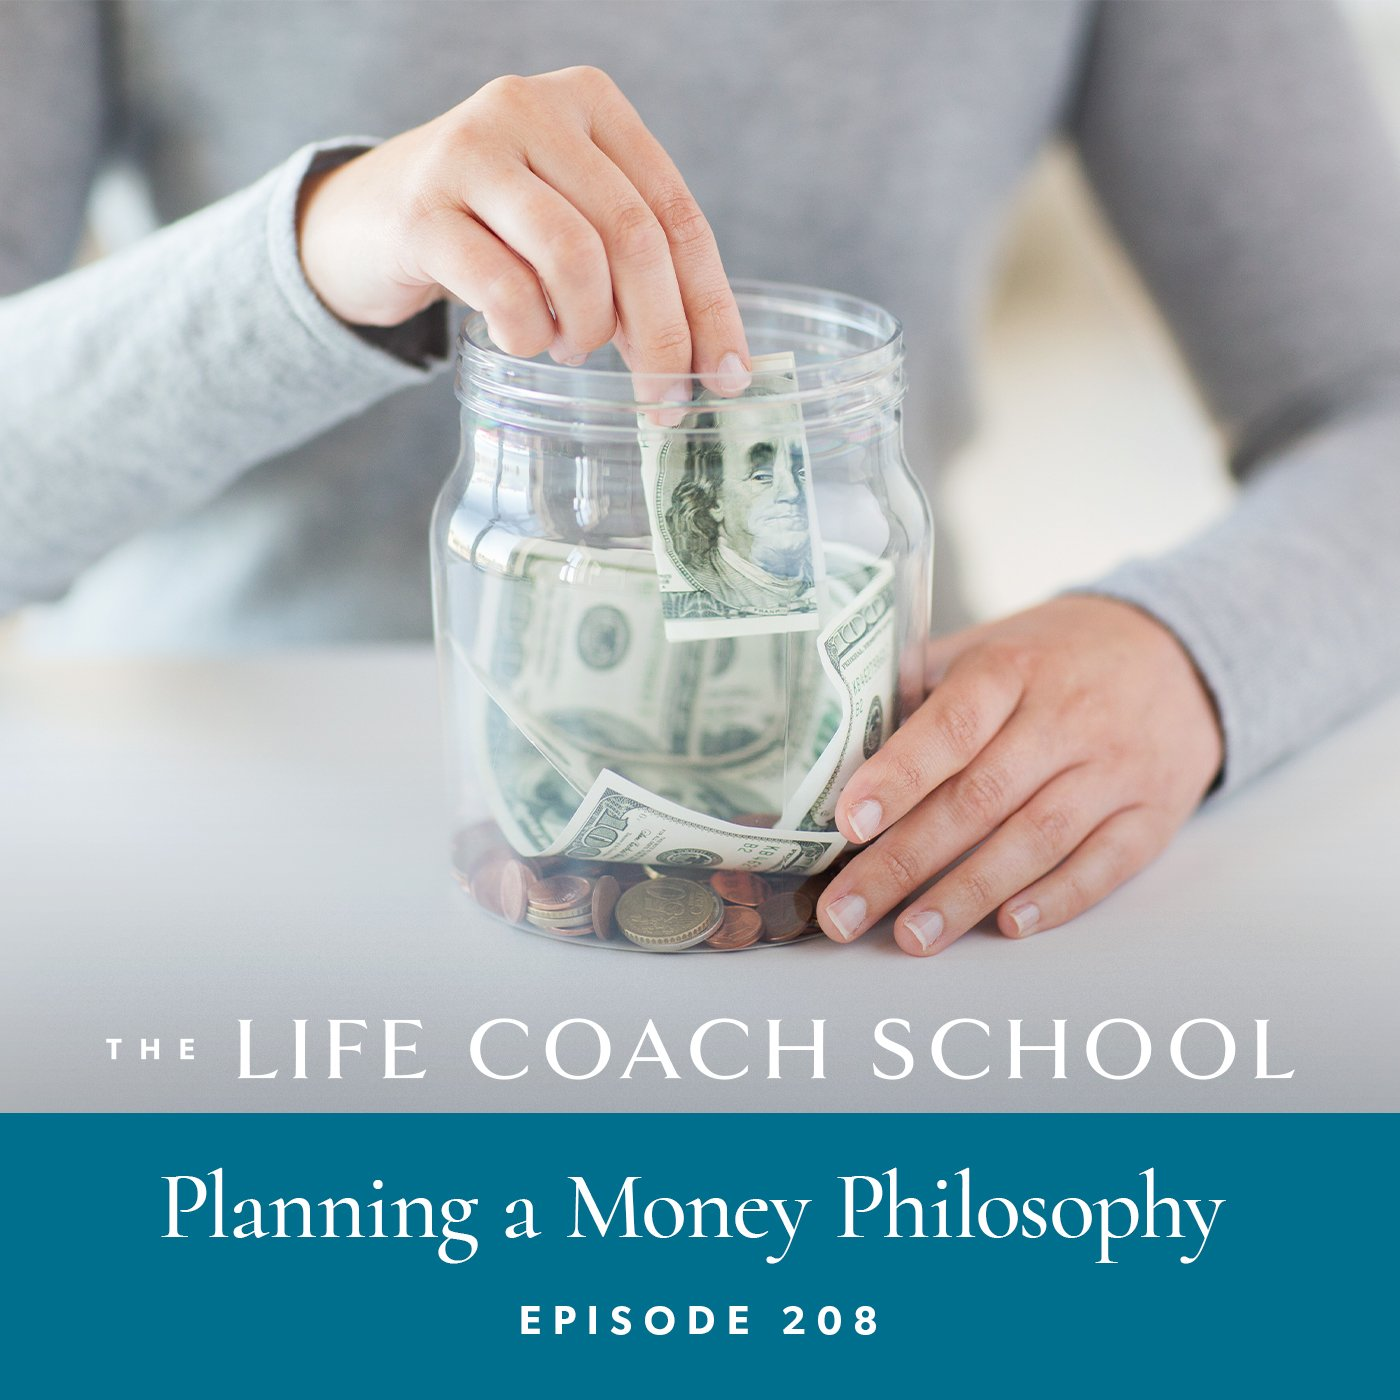 The Life Coach School Podcast with Brooke Castillo | Episode 208 | Planning a Money Philosophy